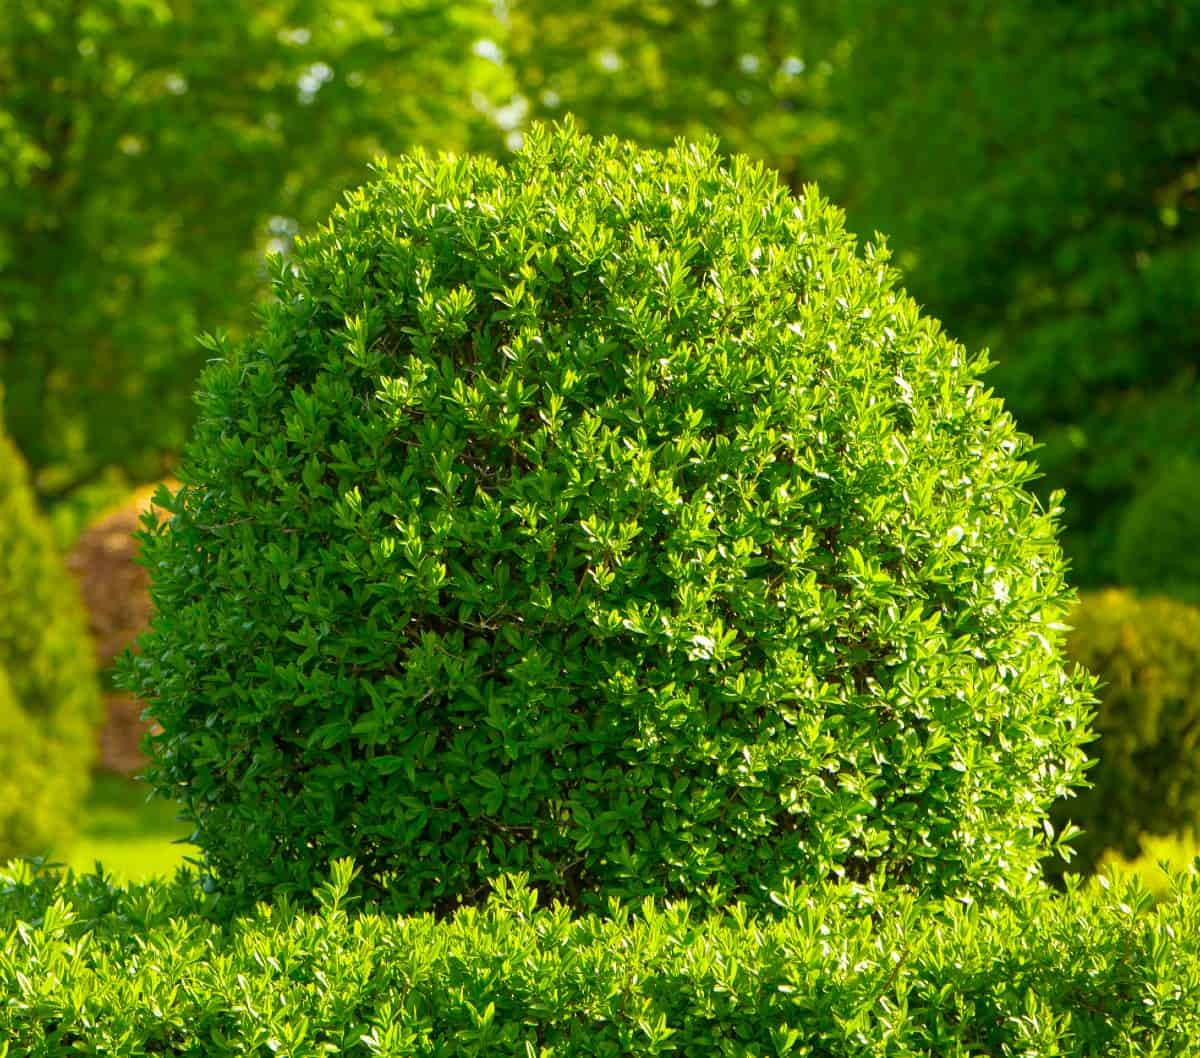 highlander boxwood comes in many shapes and sizes